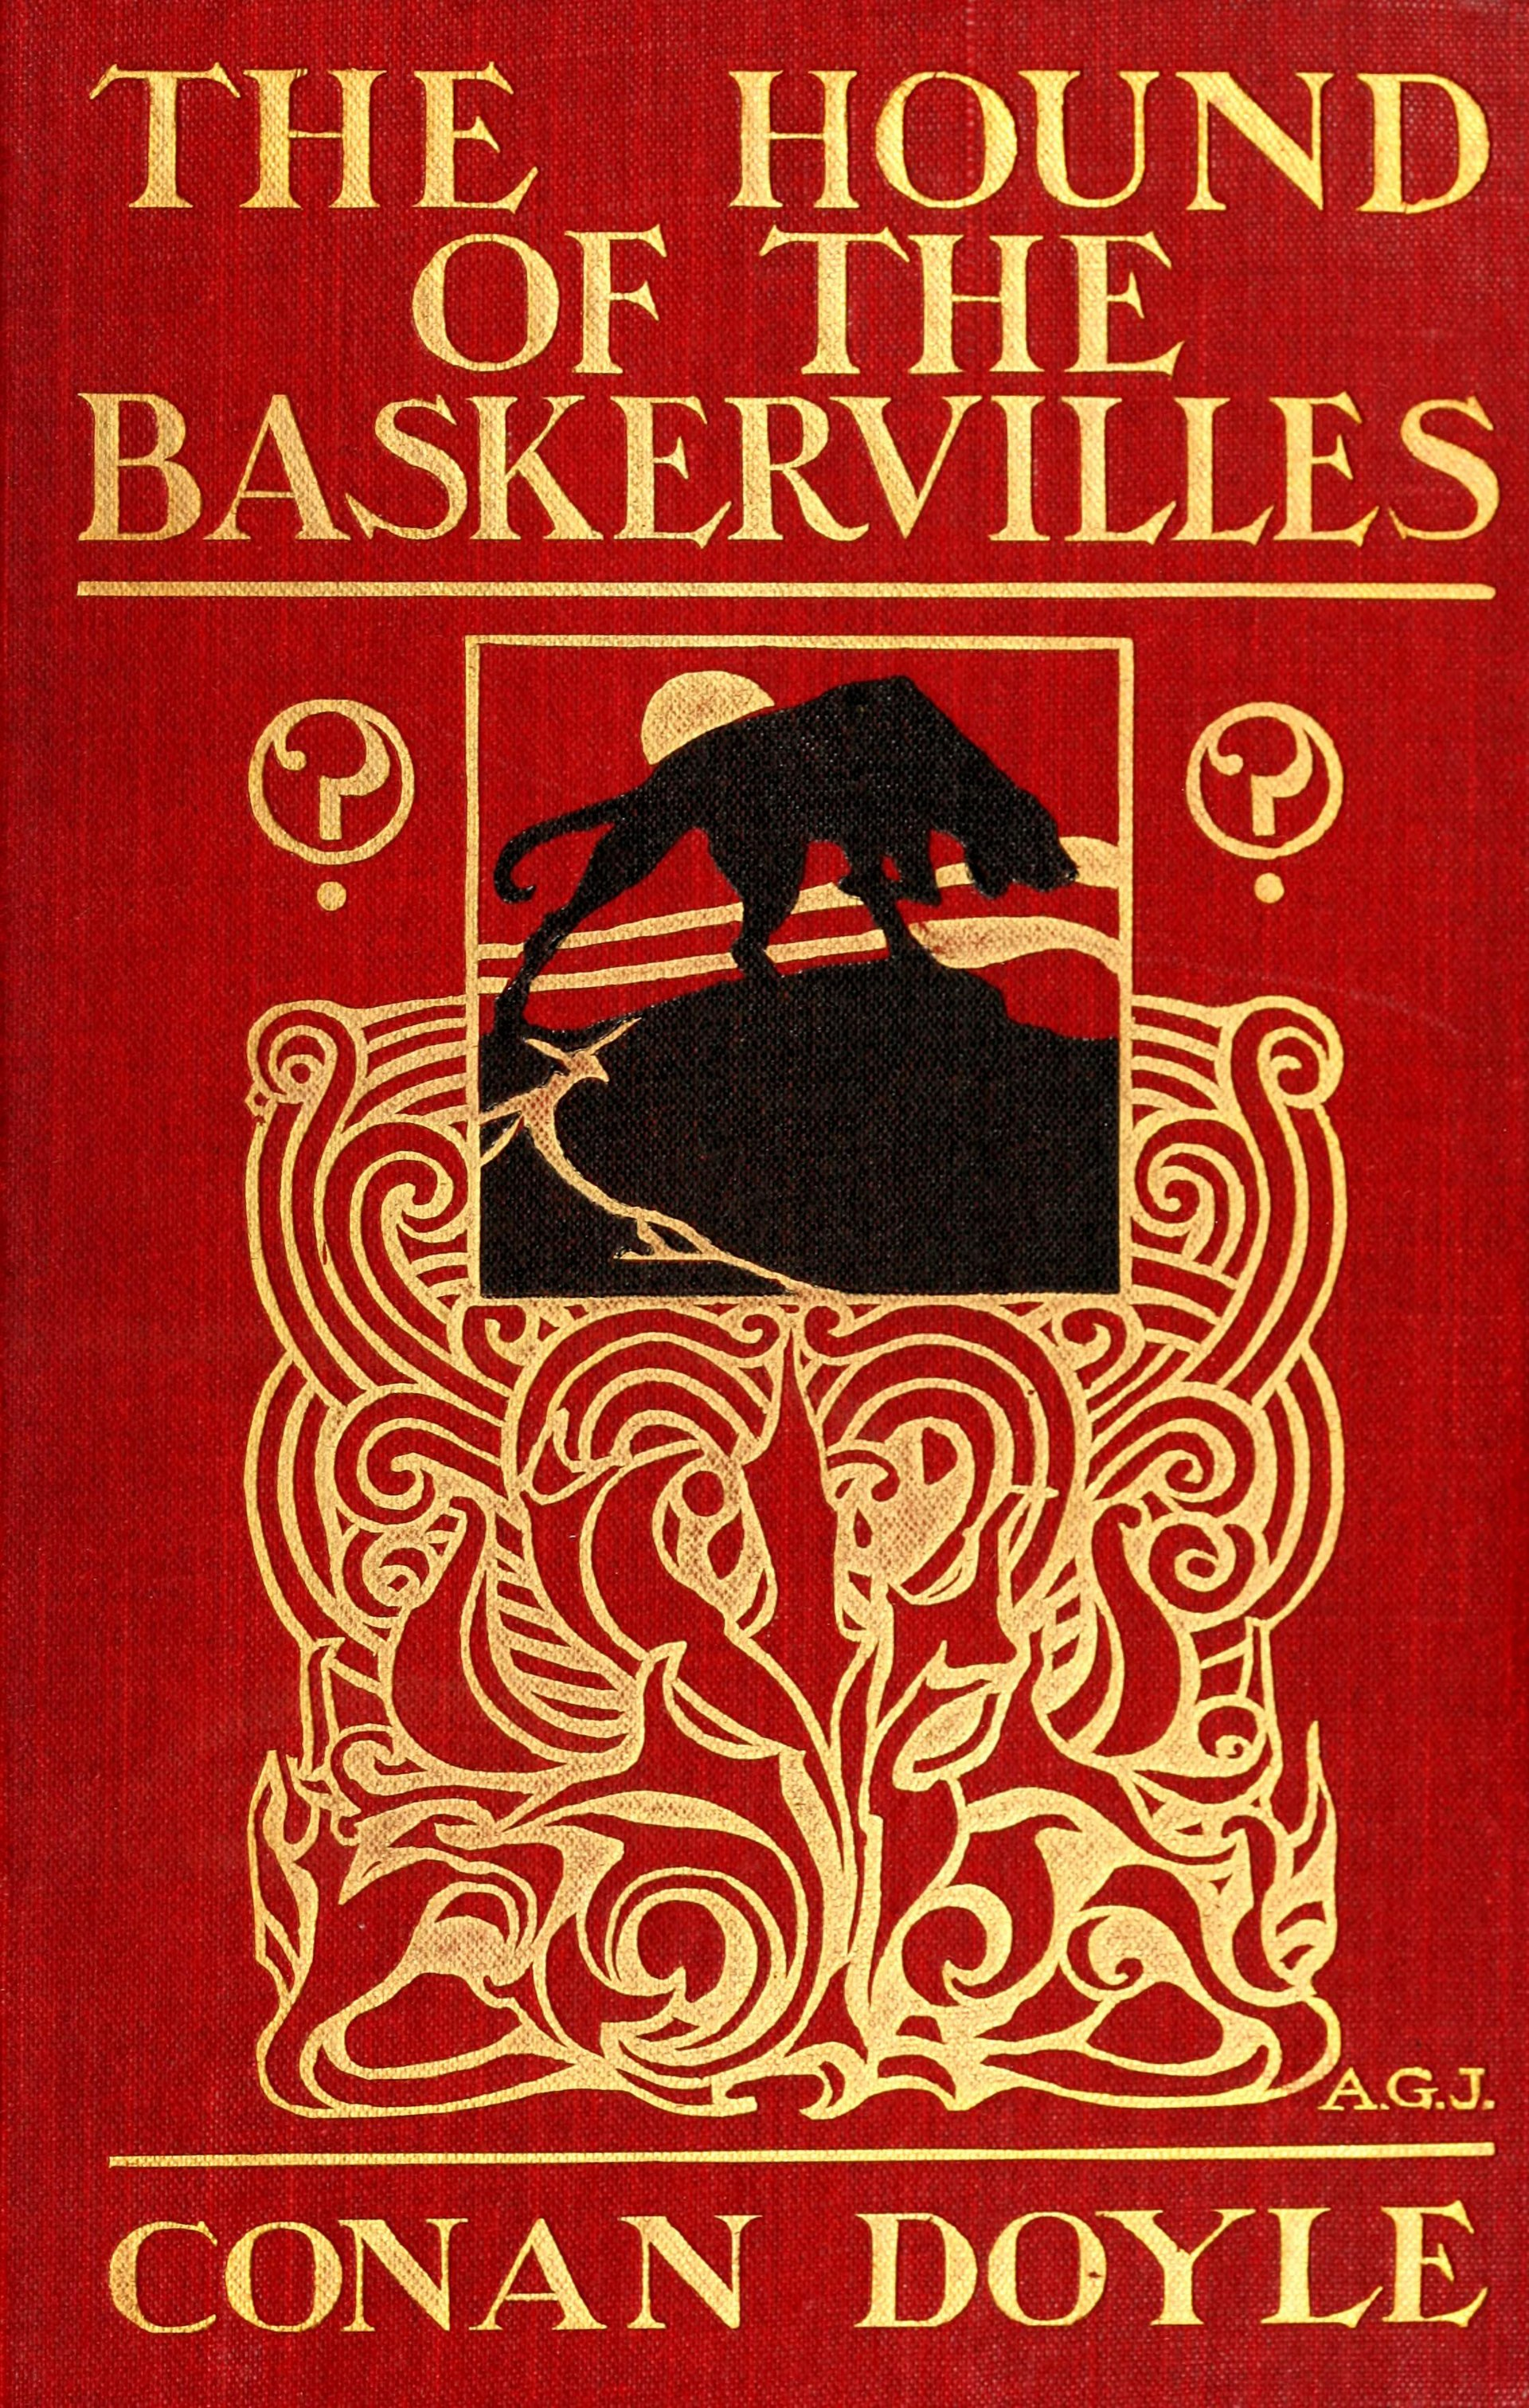 narrative in the hound of the baskervilles The hound of the baskervilles was serialized in the strand magazine (where most of the stories were serialized) narrative strategies in hound.